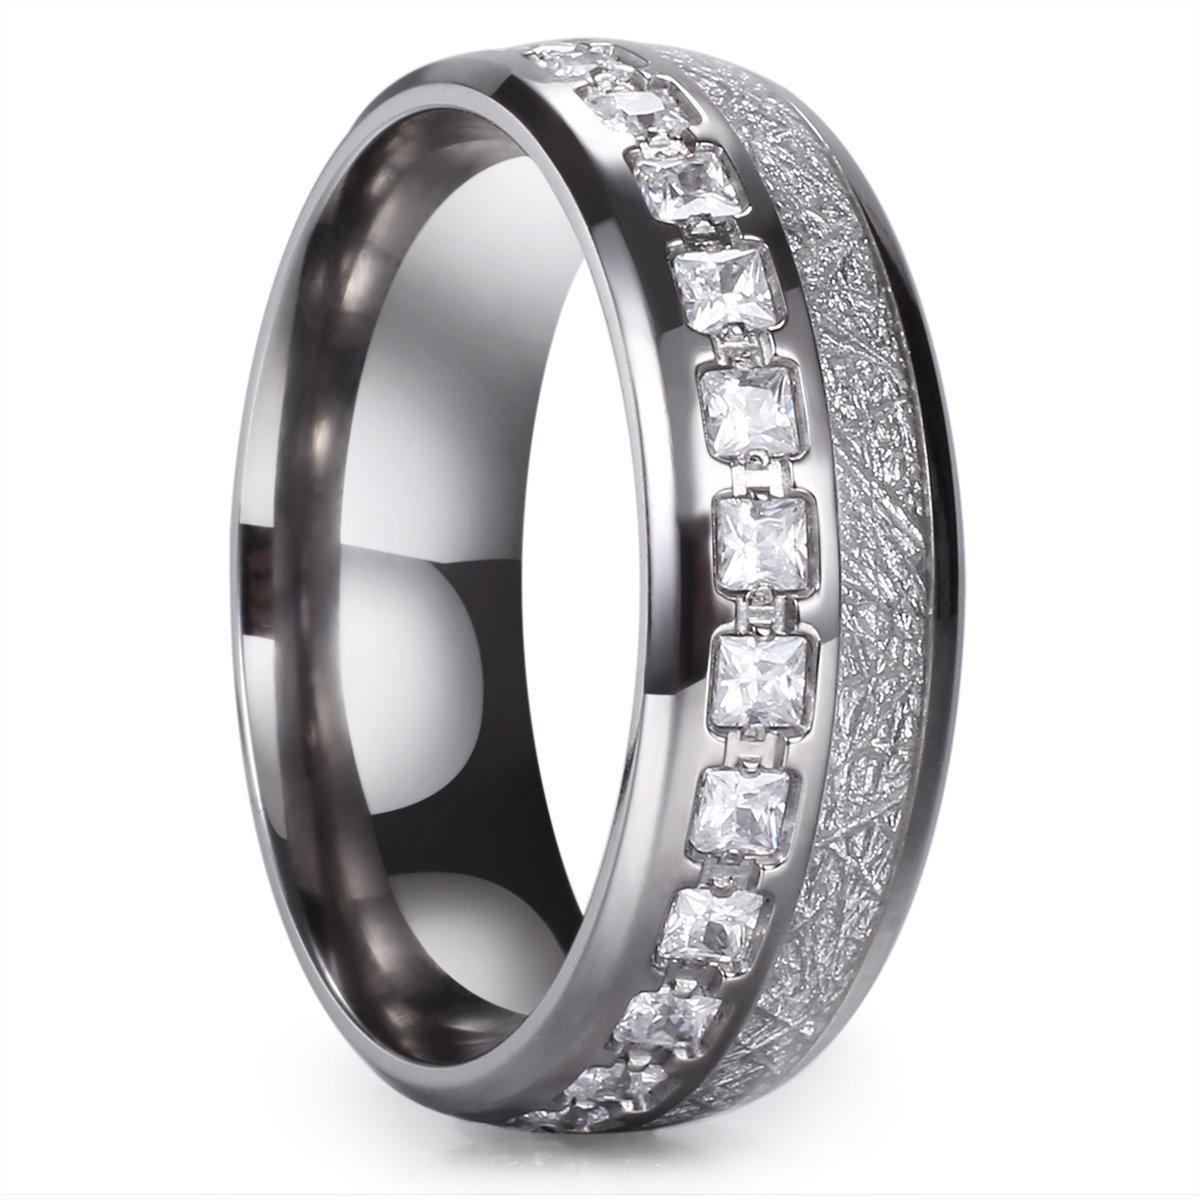 King Will Meteor 8mm Titanium Ring Domed Imitated Meteorite Wedding Band with Cubic Zirconia 10